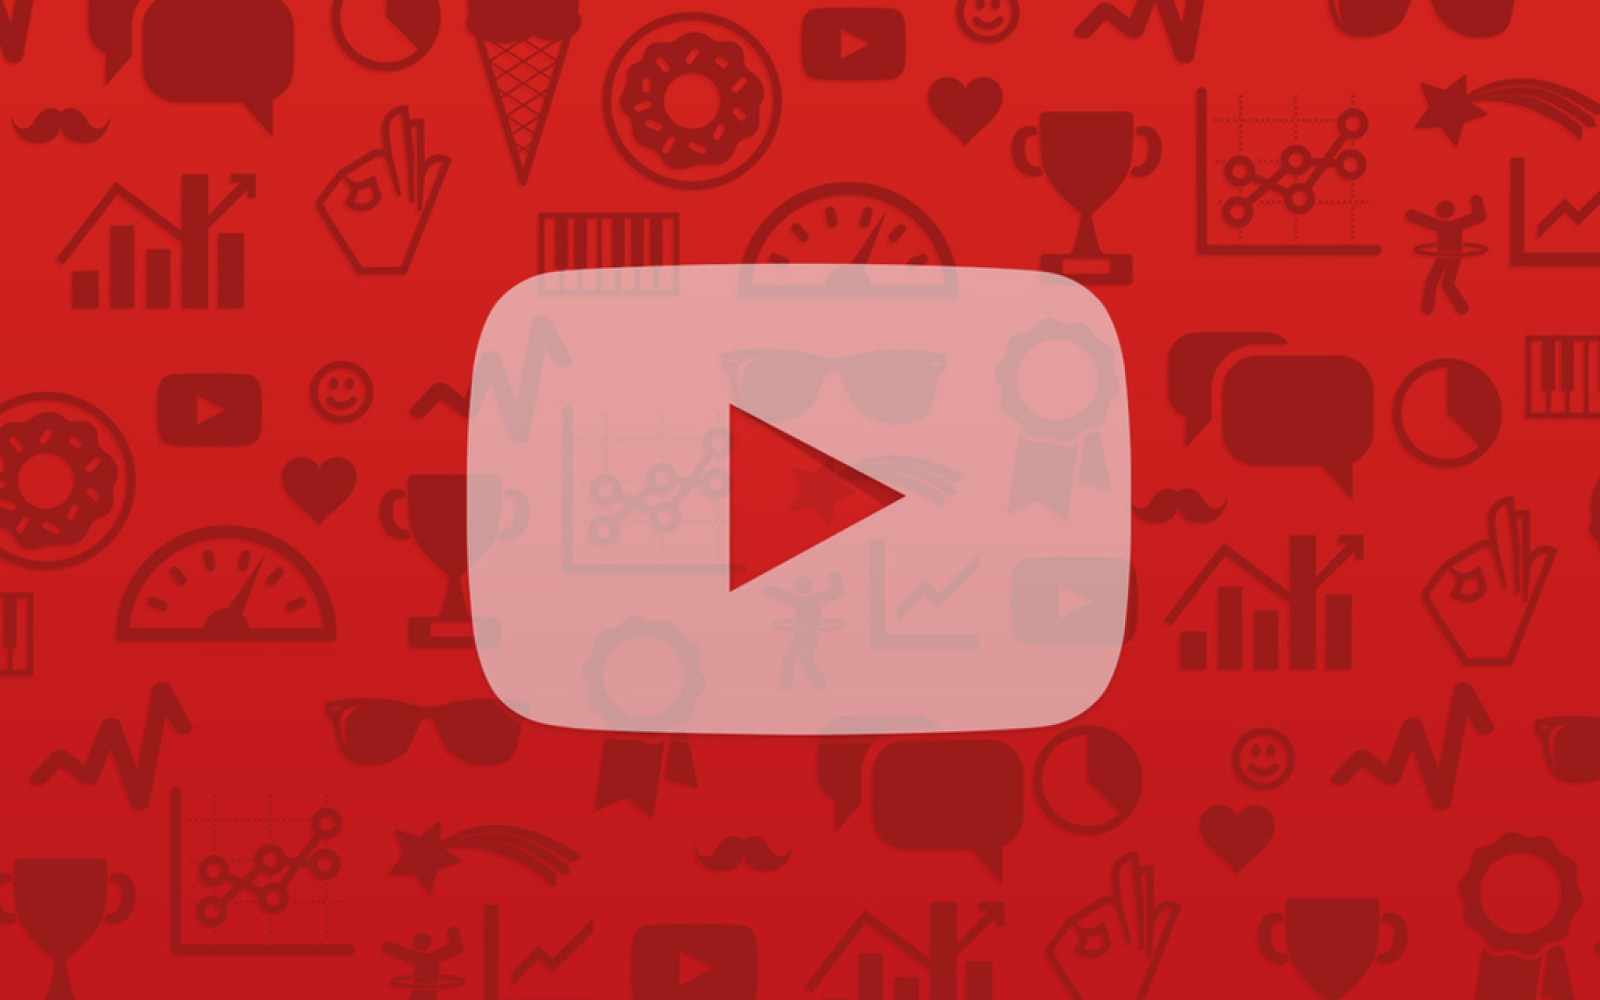 New video capture and upload interface rolling out to the YouTube Android app